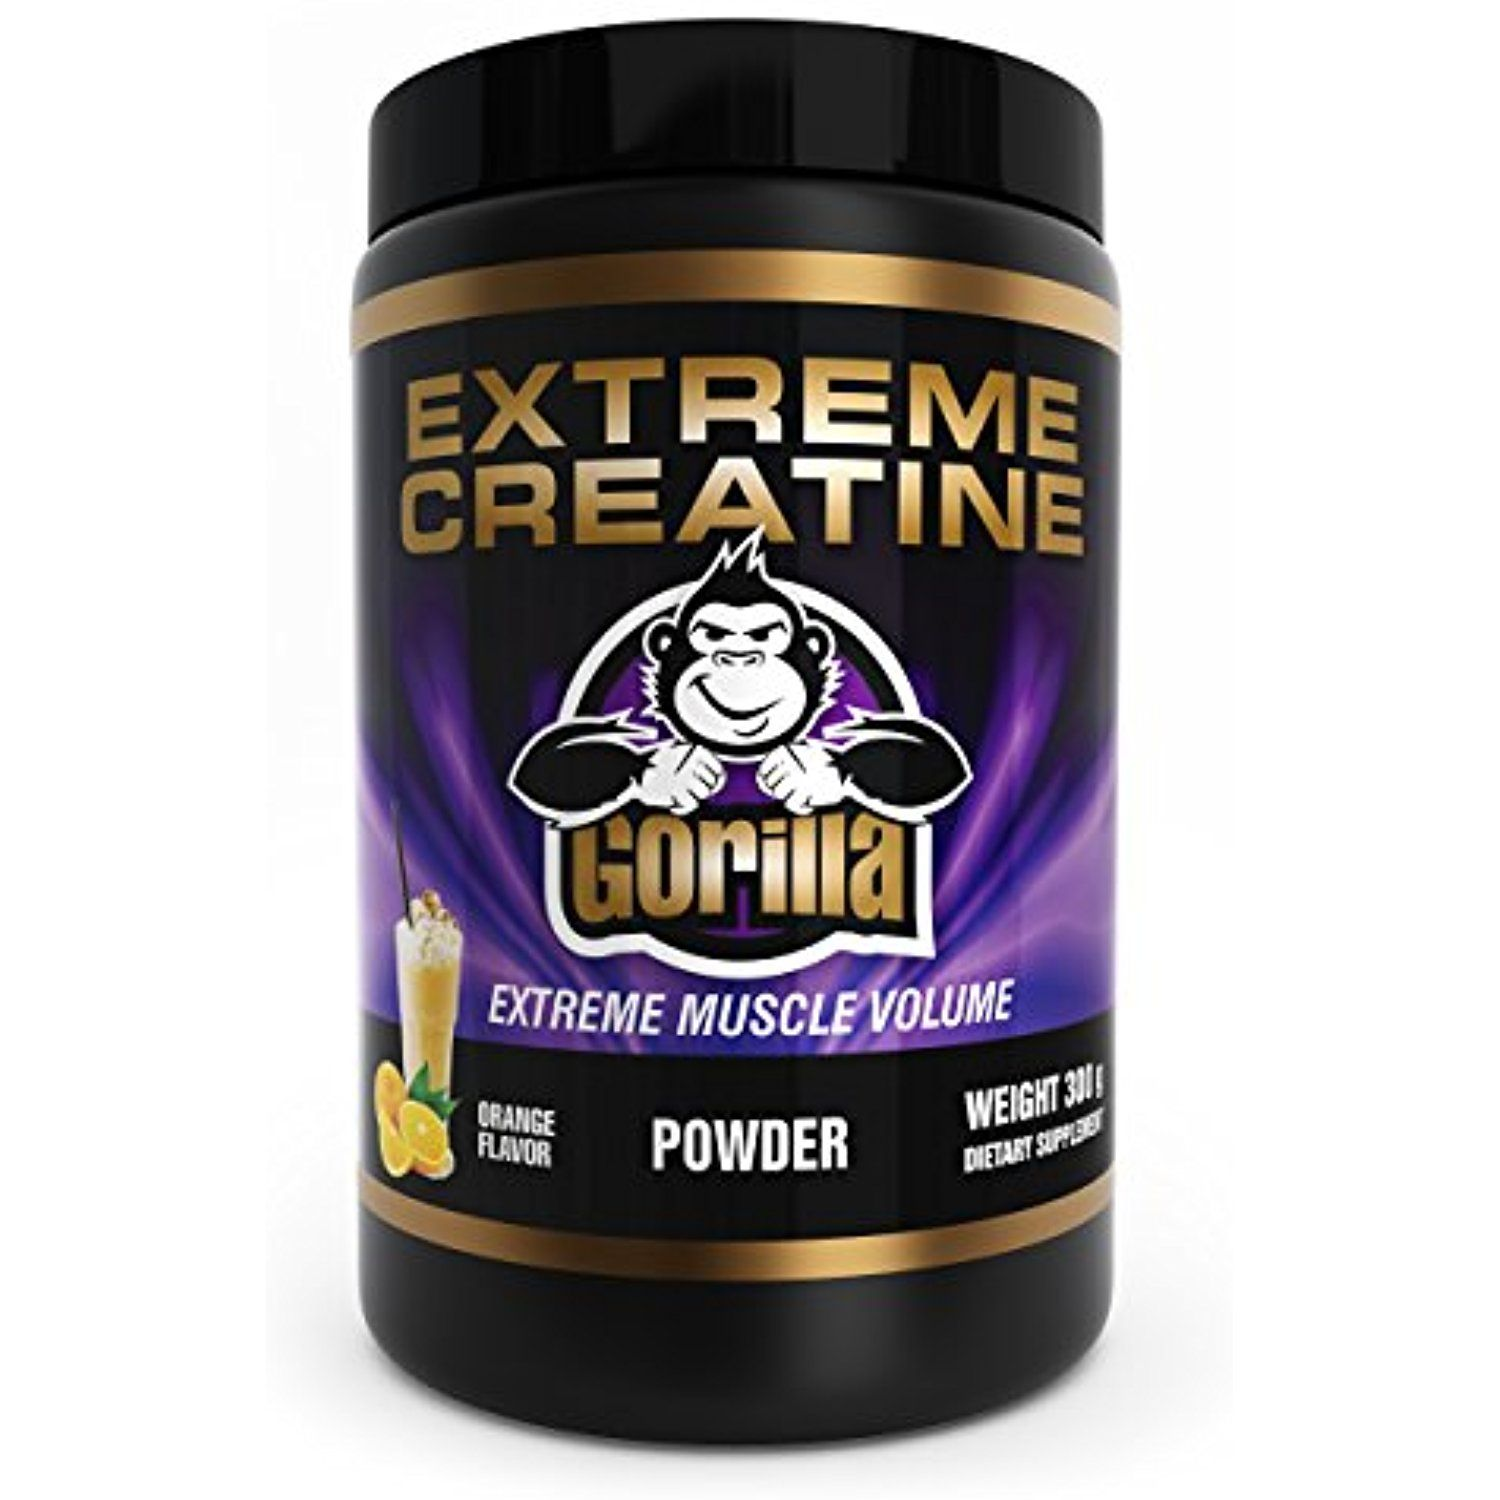 Vital Life Usa Extreme Creatine Monohydrate Powder With Maltodextrin And Sucralose 300 Grams Oran Creatine Supplements For Muscle Growth Creatine Monohydrate